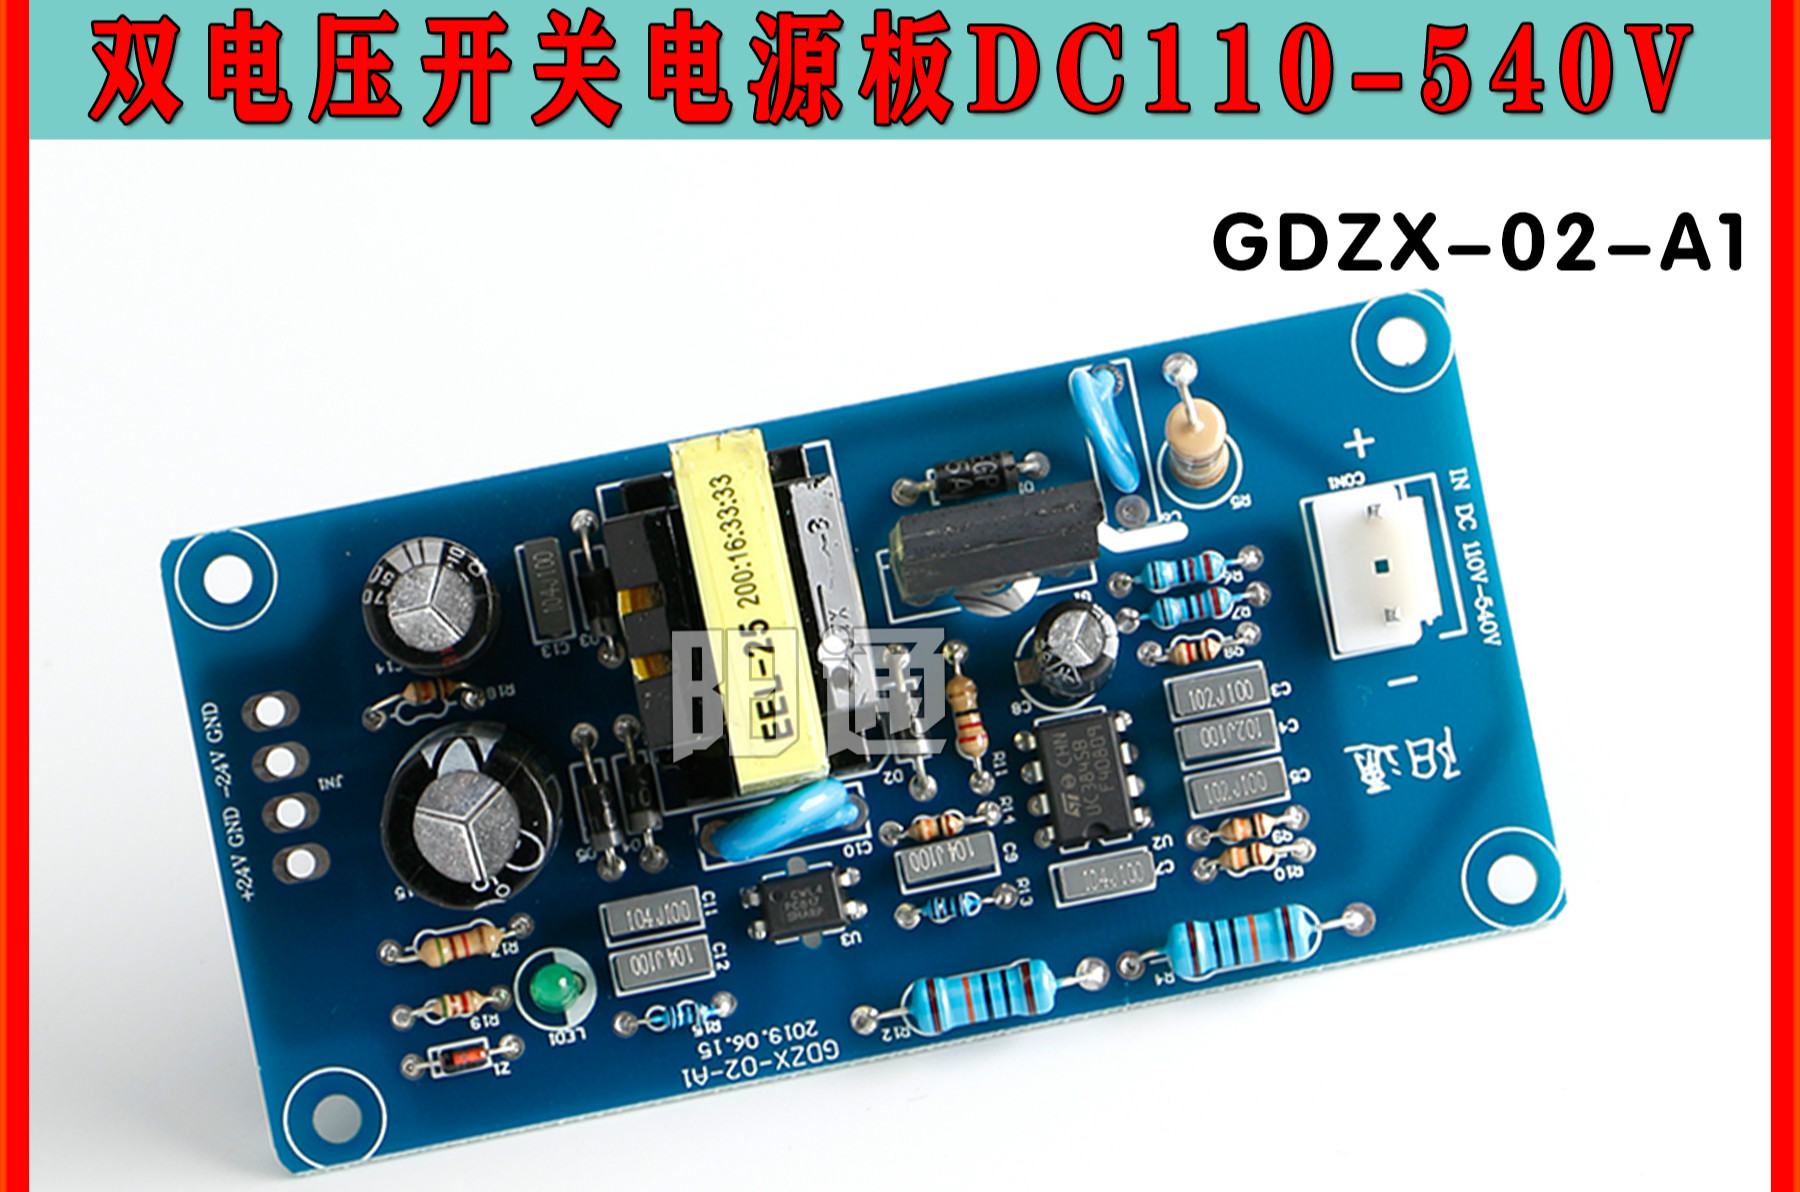 Dual Voltage Switching Power Supply Board DC110-540V Input Positive And Negative 24V Output